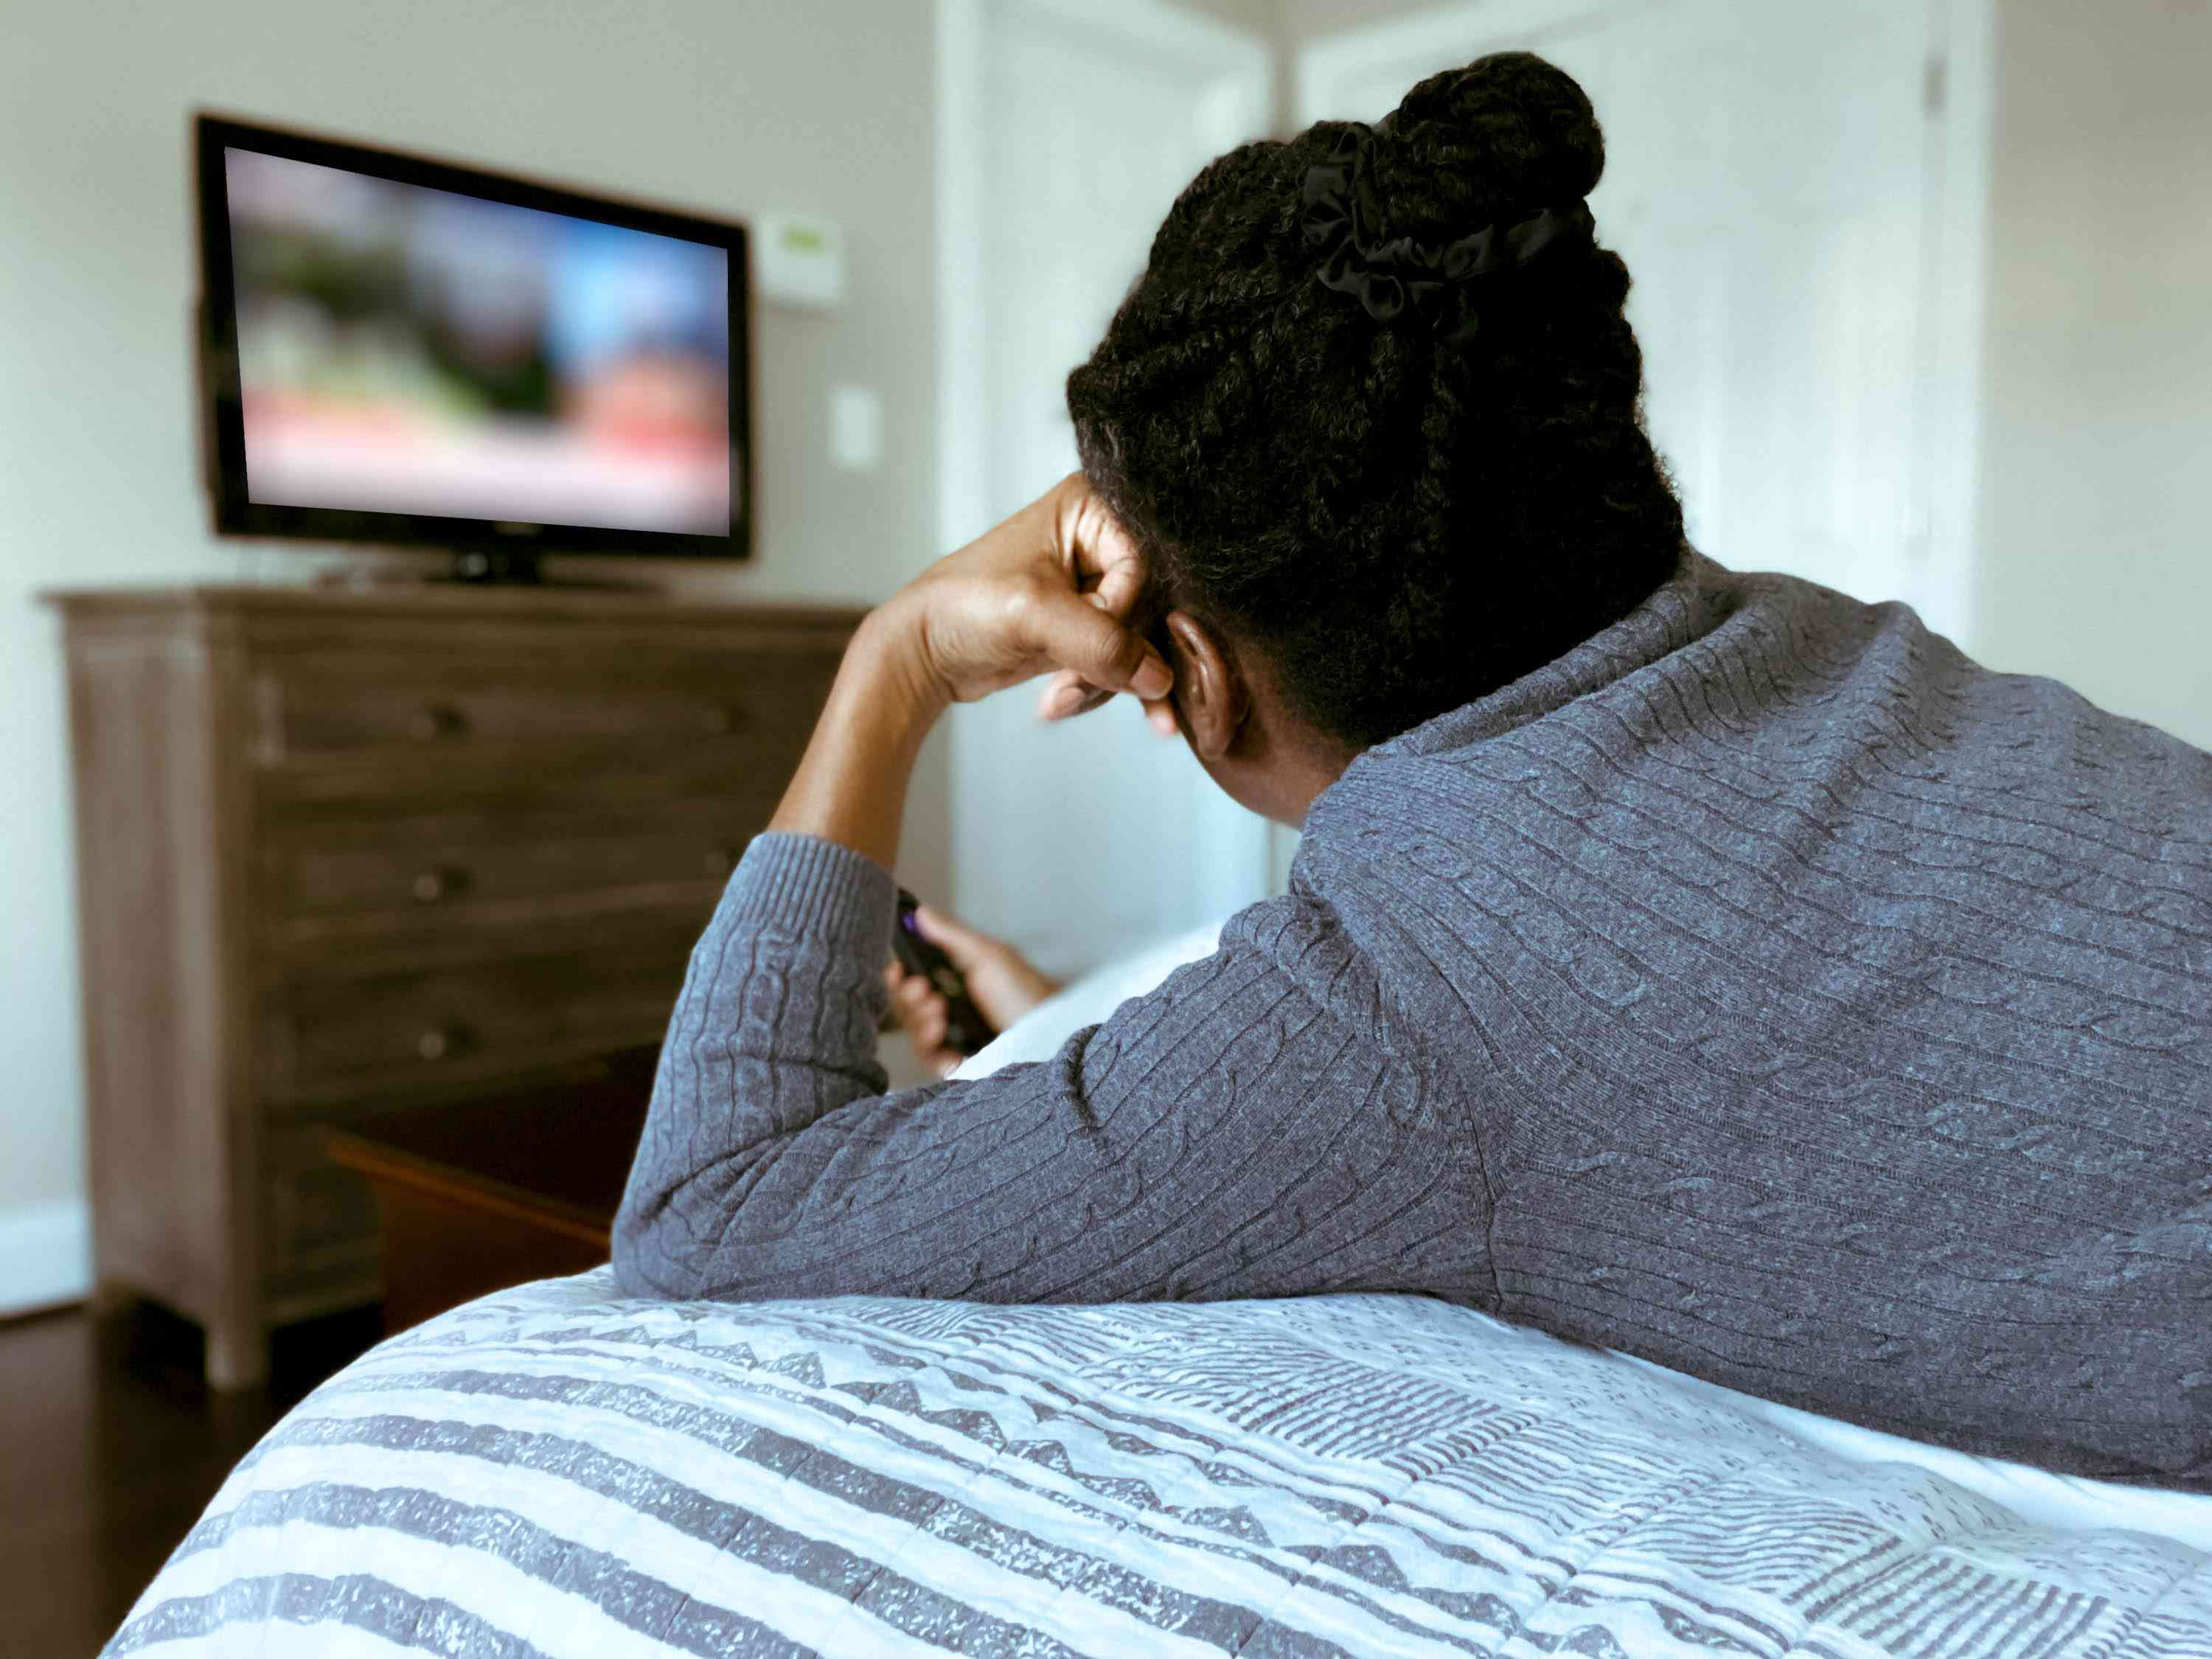 Woman watching TV, from the back shot